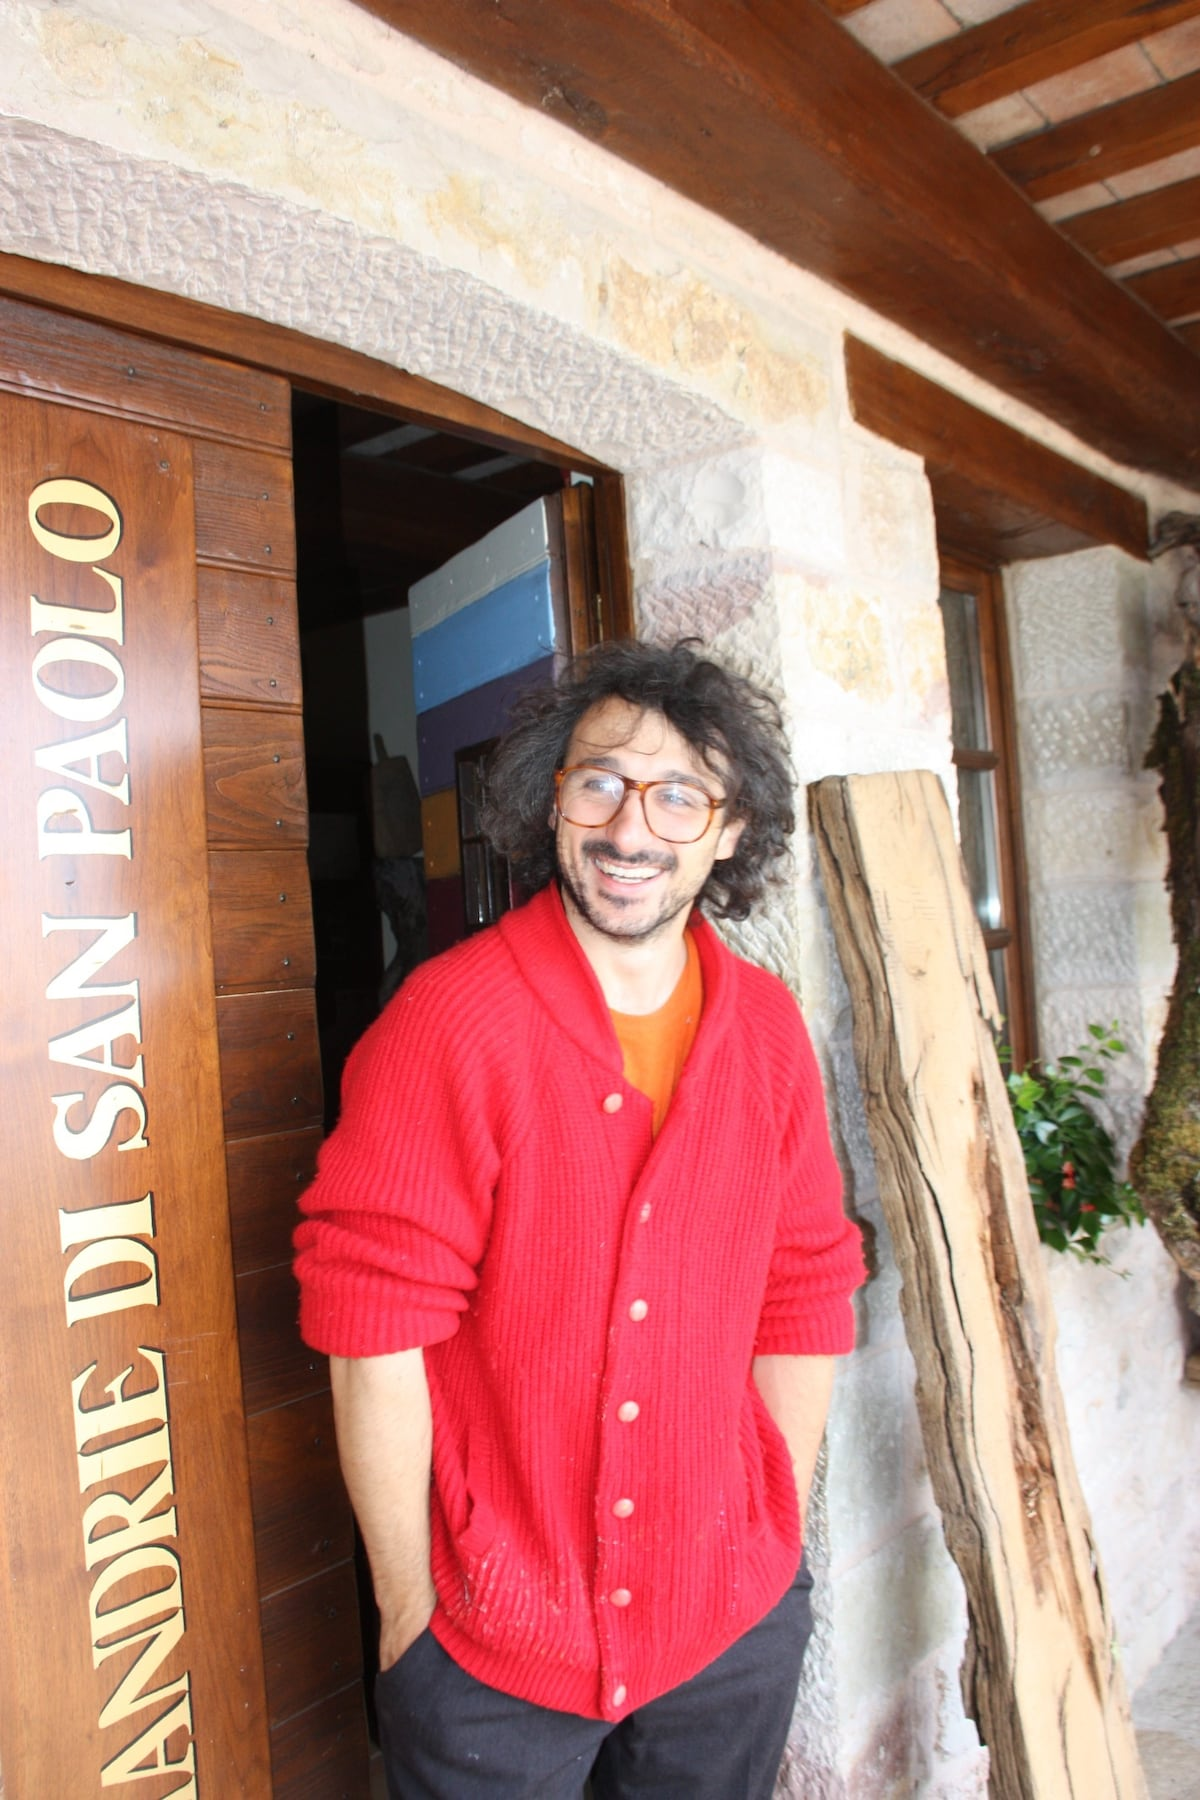 Alessandro from Assisi